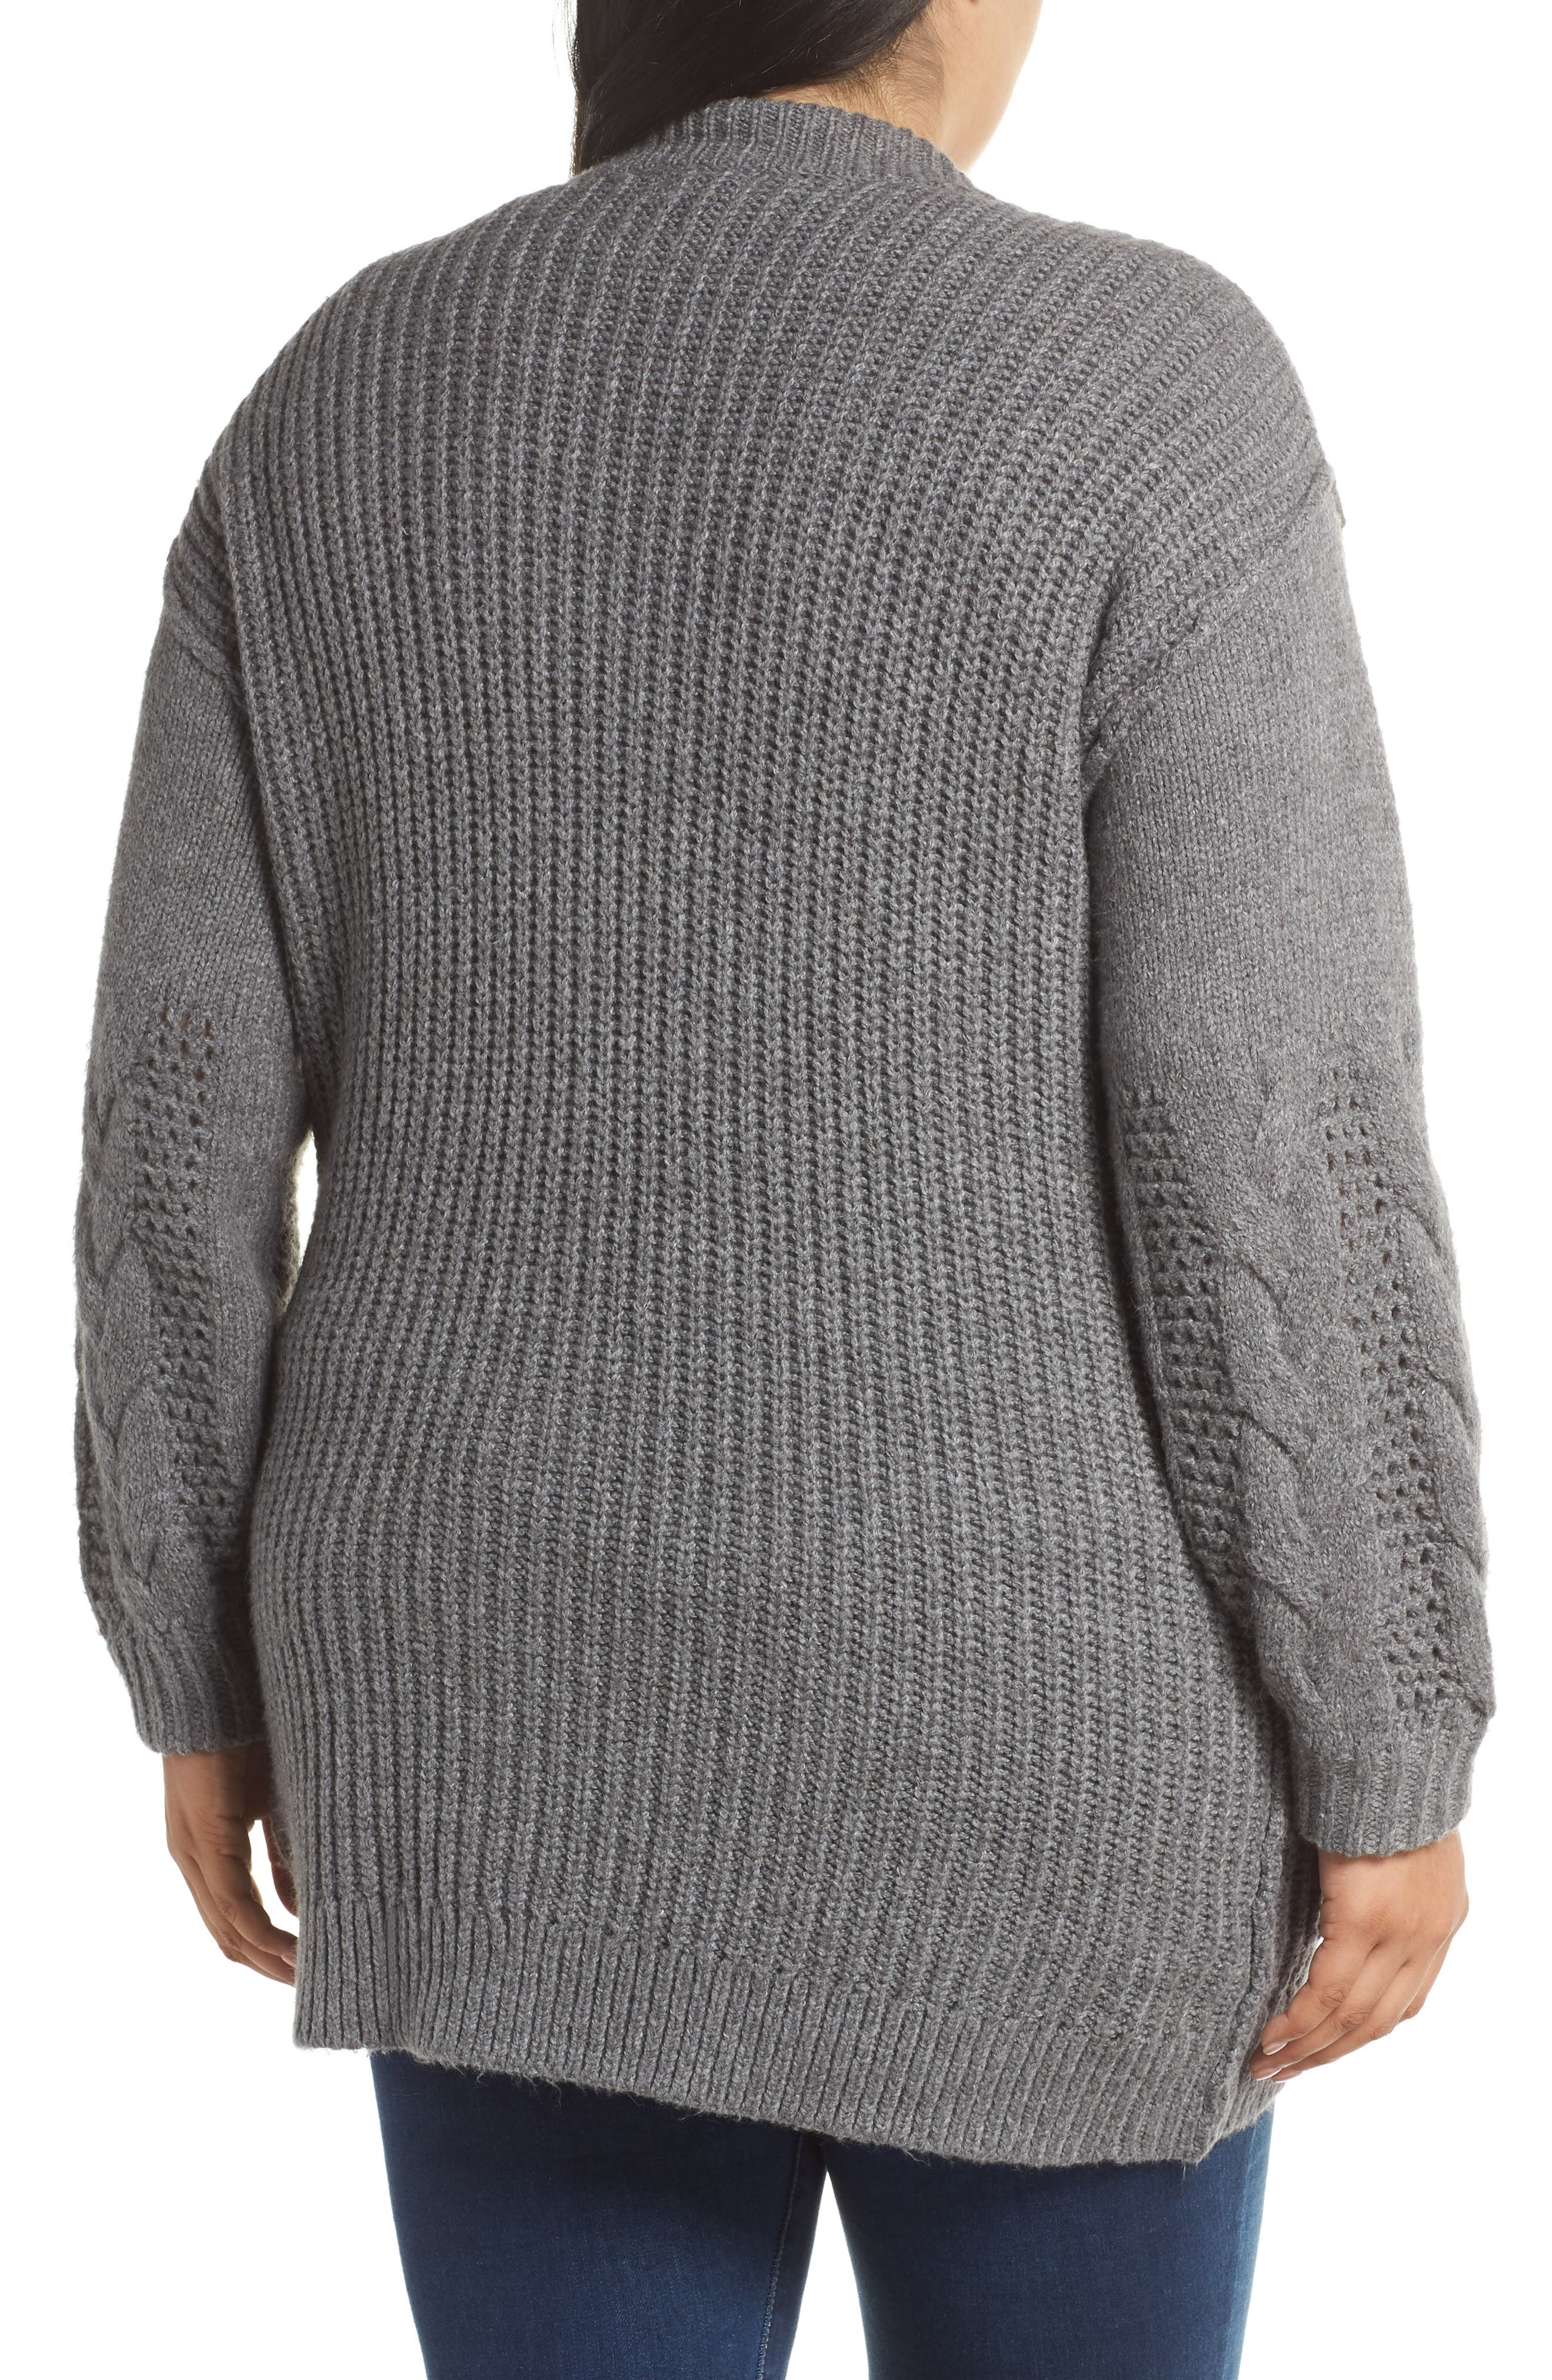 Cable Knit Sleeve Cardigan,                             Alternate thumbnail 2, color,                             GREY DARK HEATHER